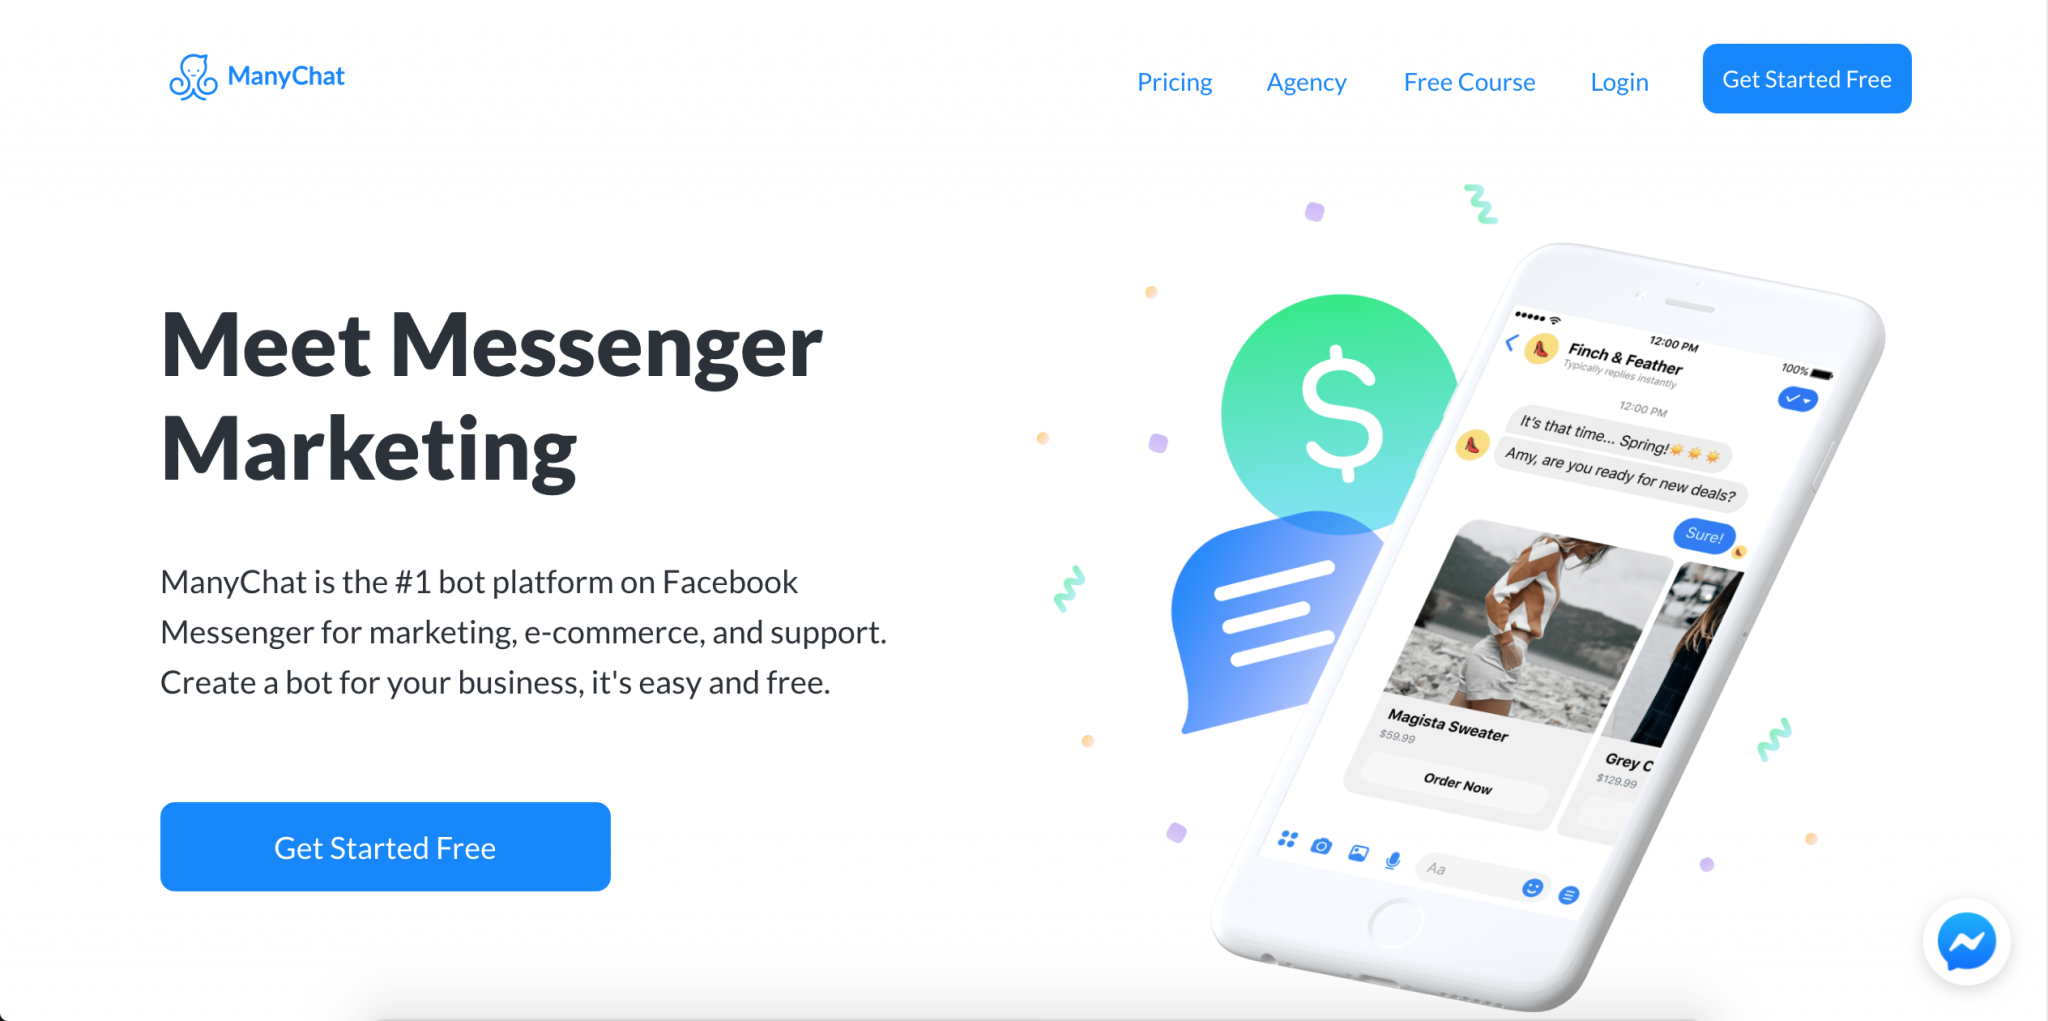 Step 2 to Make A Facebook Messenger bot: Create your free ManyChat account